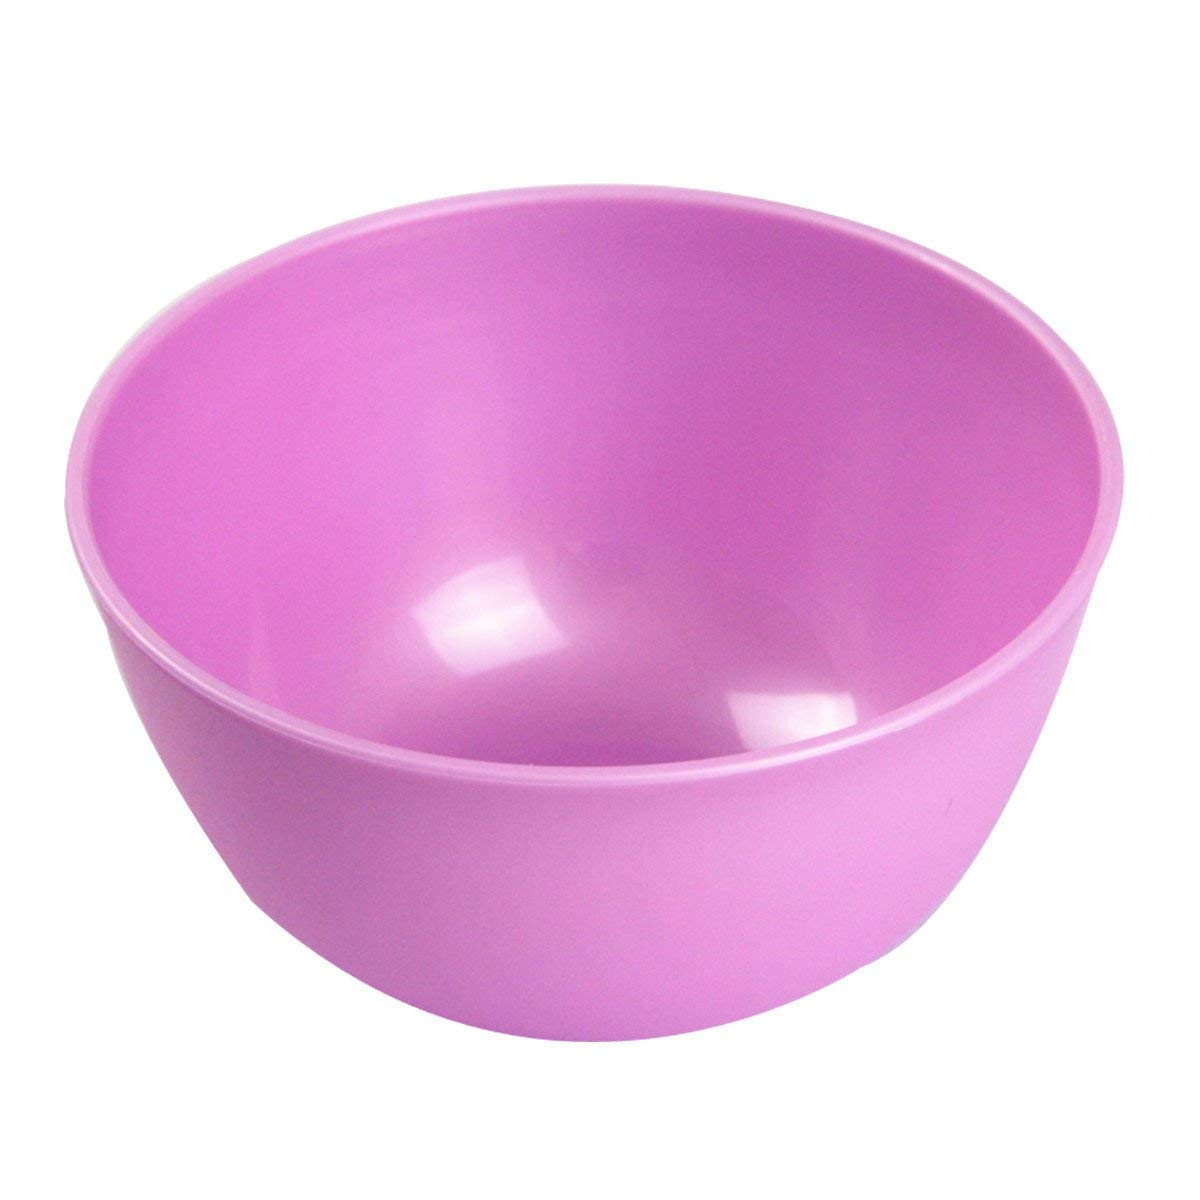 Microwave Safe Bowls Cheap Microwave Cereal Bowls Find Microwave Cereal Bowls Deals On